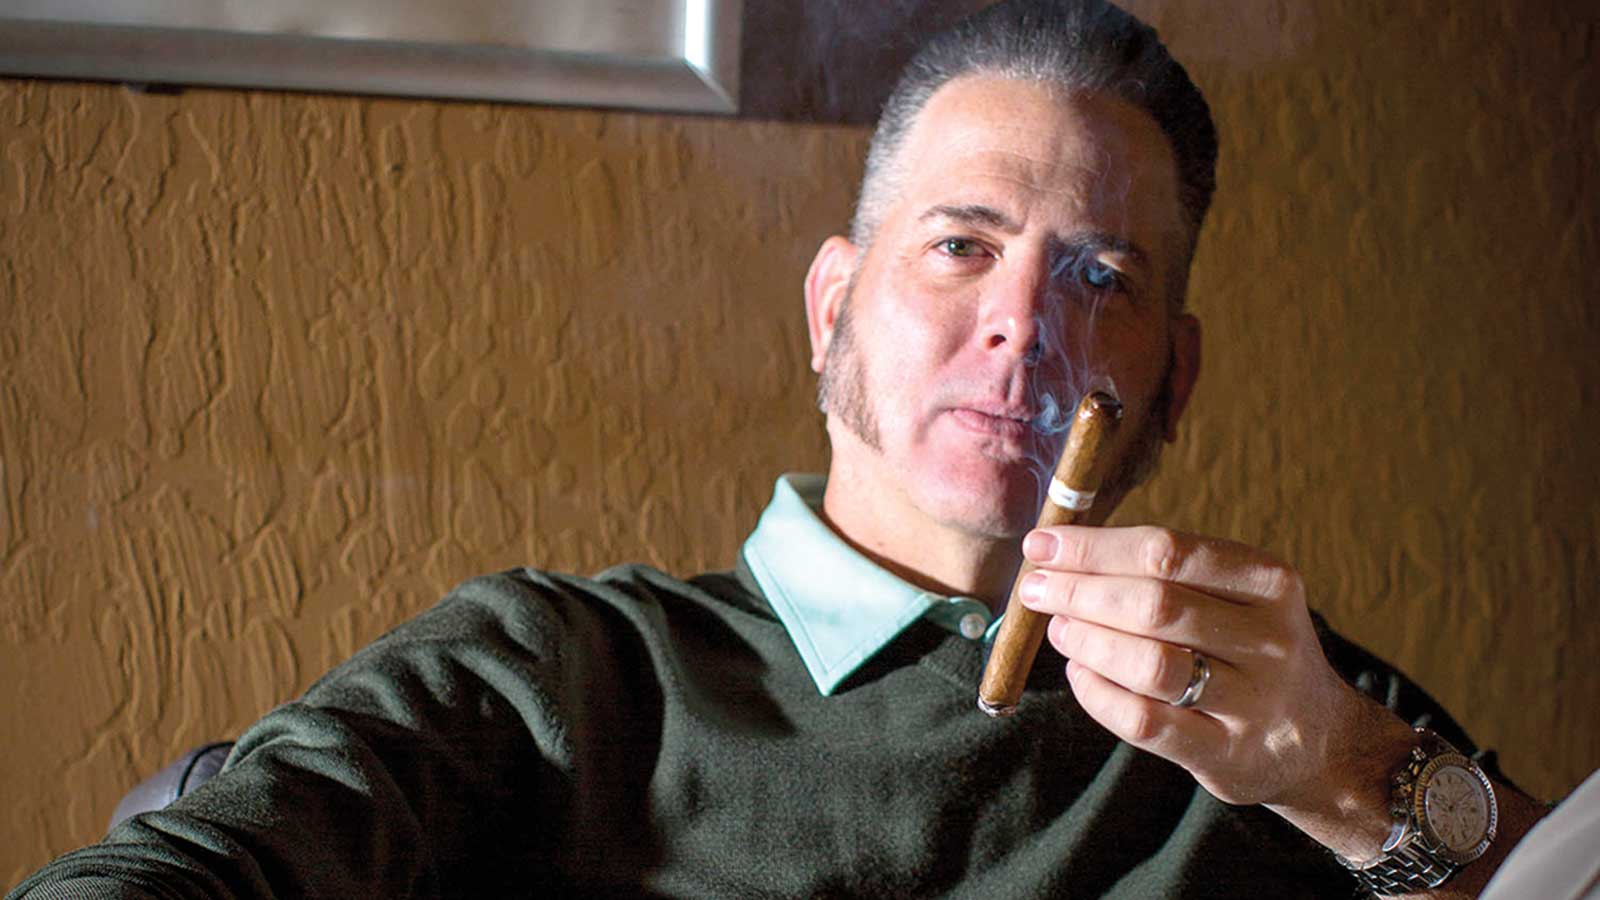 Dion Giolito, owner of Illusione Cigars.